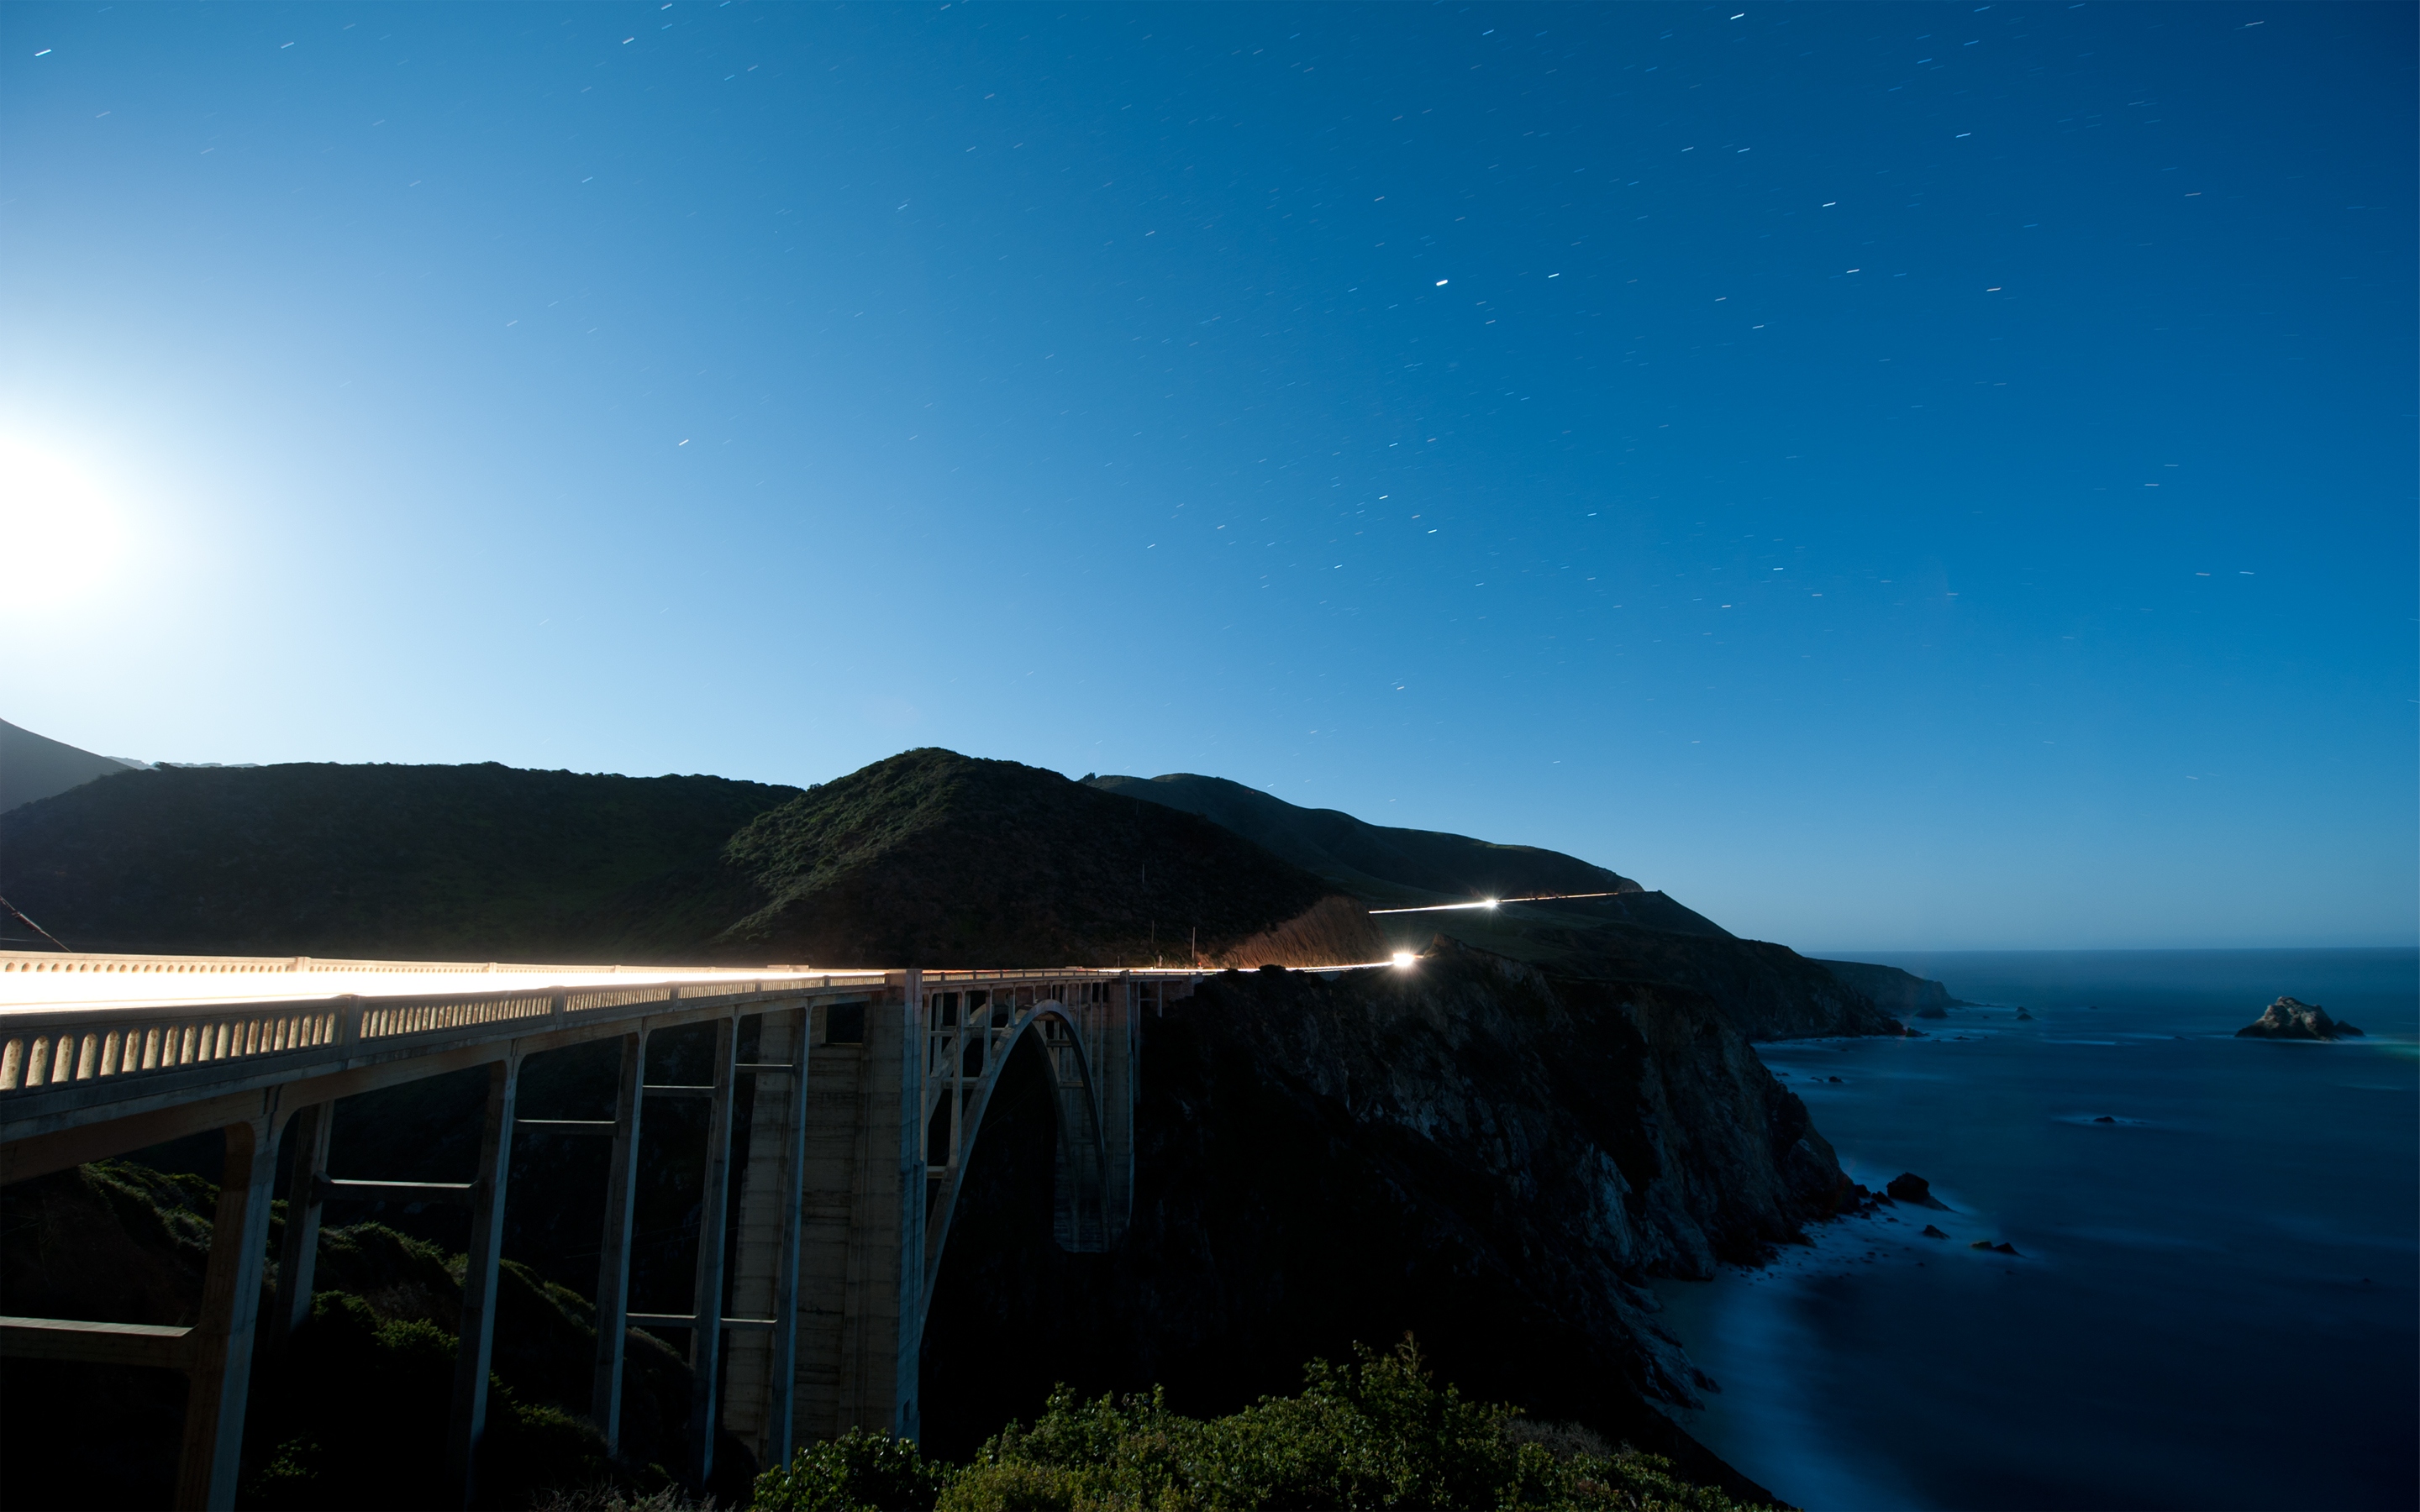 Bixby Creek Bridge Big Sur 1003.99 Kb